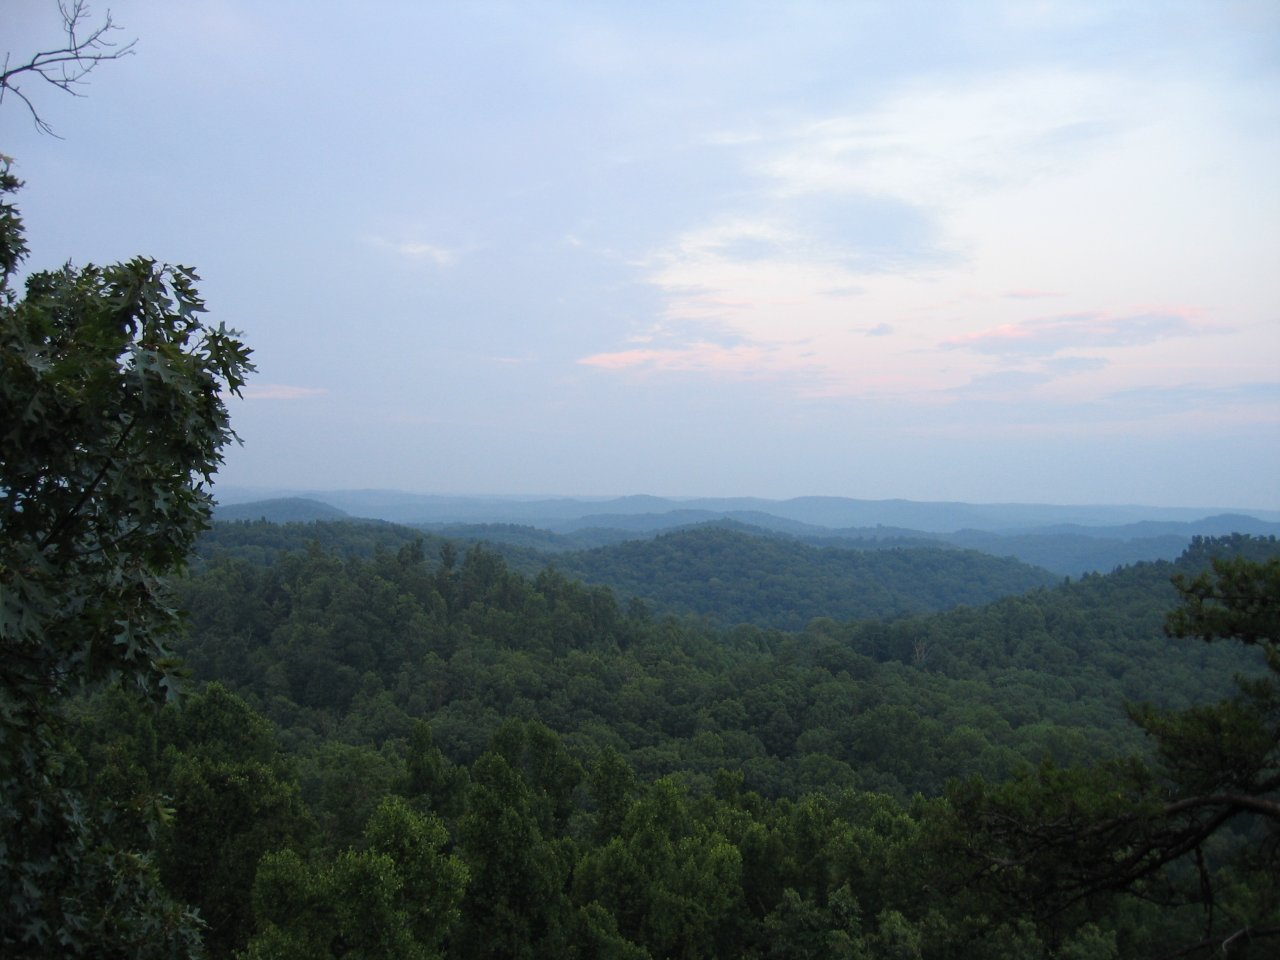 http://upload.wikimedia.org/wikipedia/commons/a/a2/Daniel_Boone_National_Forest_Tater_Knob.jpg